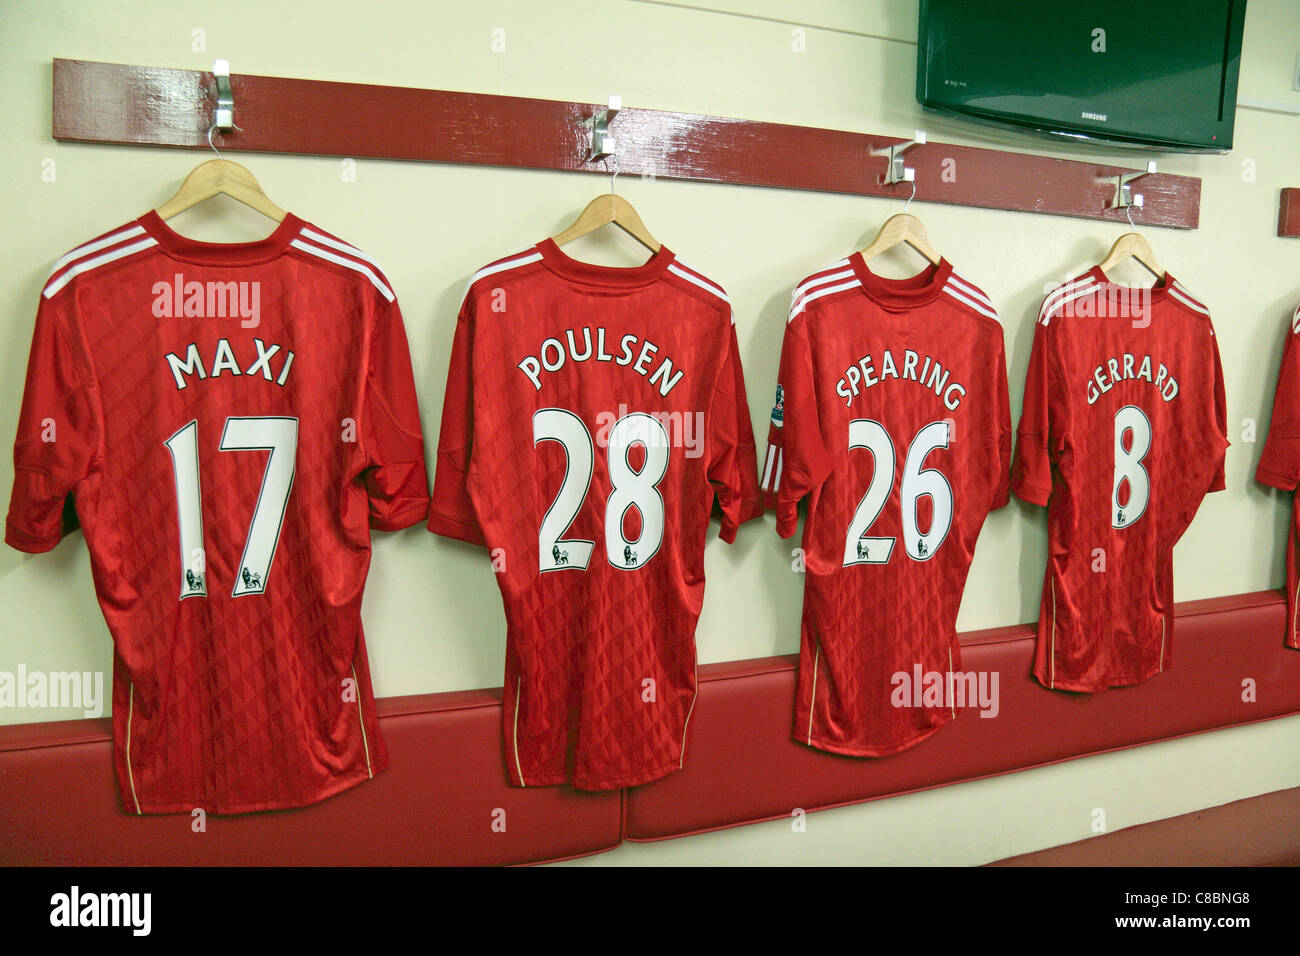 4427d1321 Line of player shirts on display in the home team changing room at Anfield